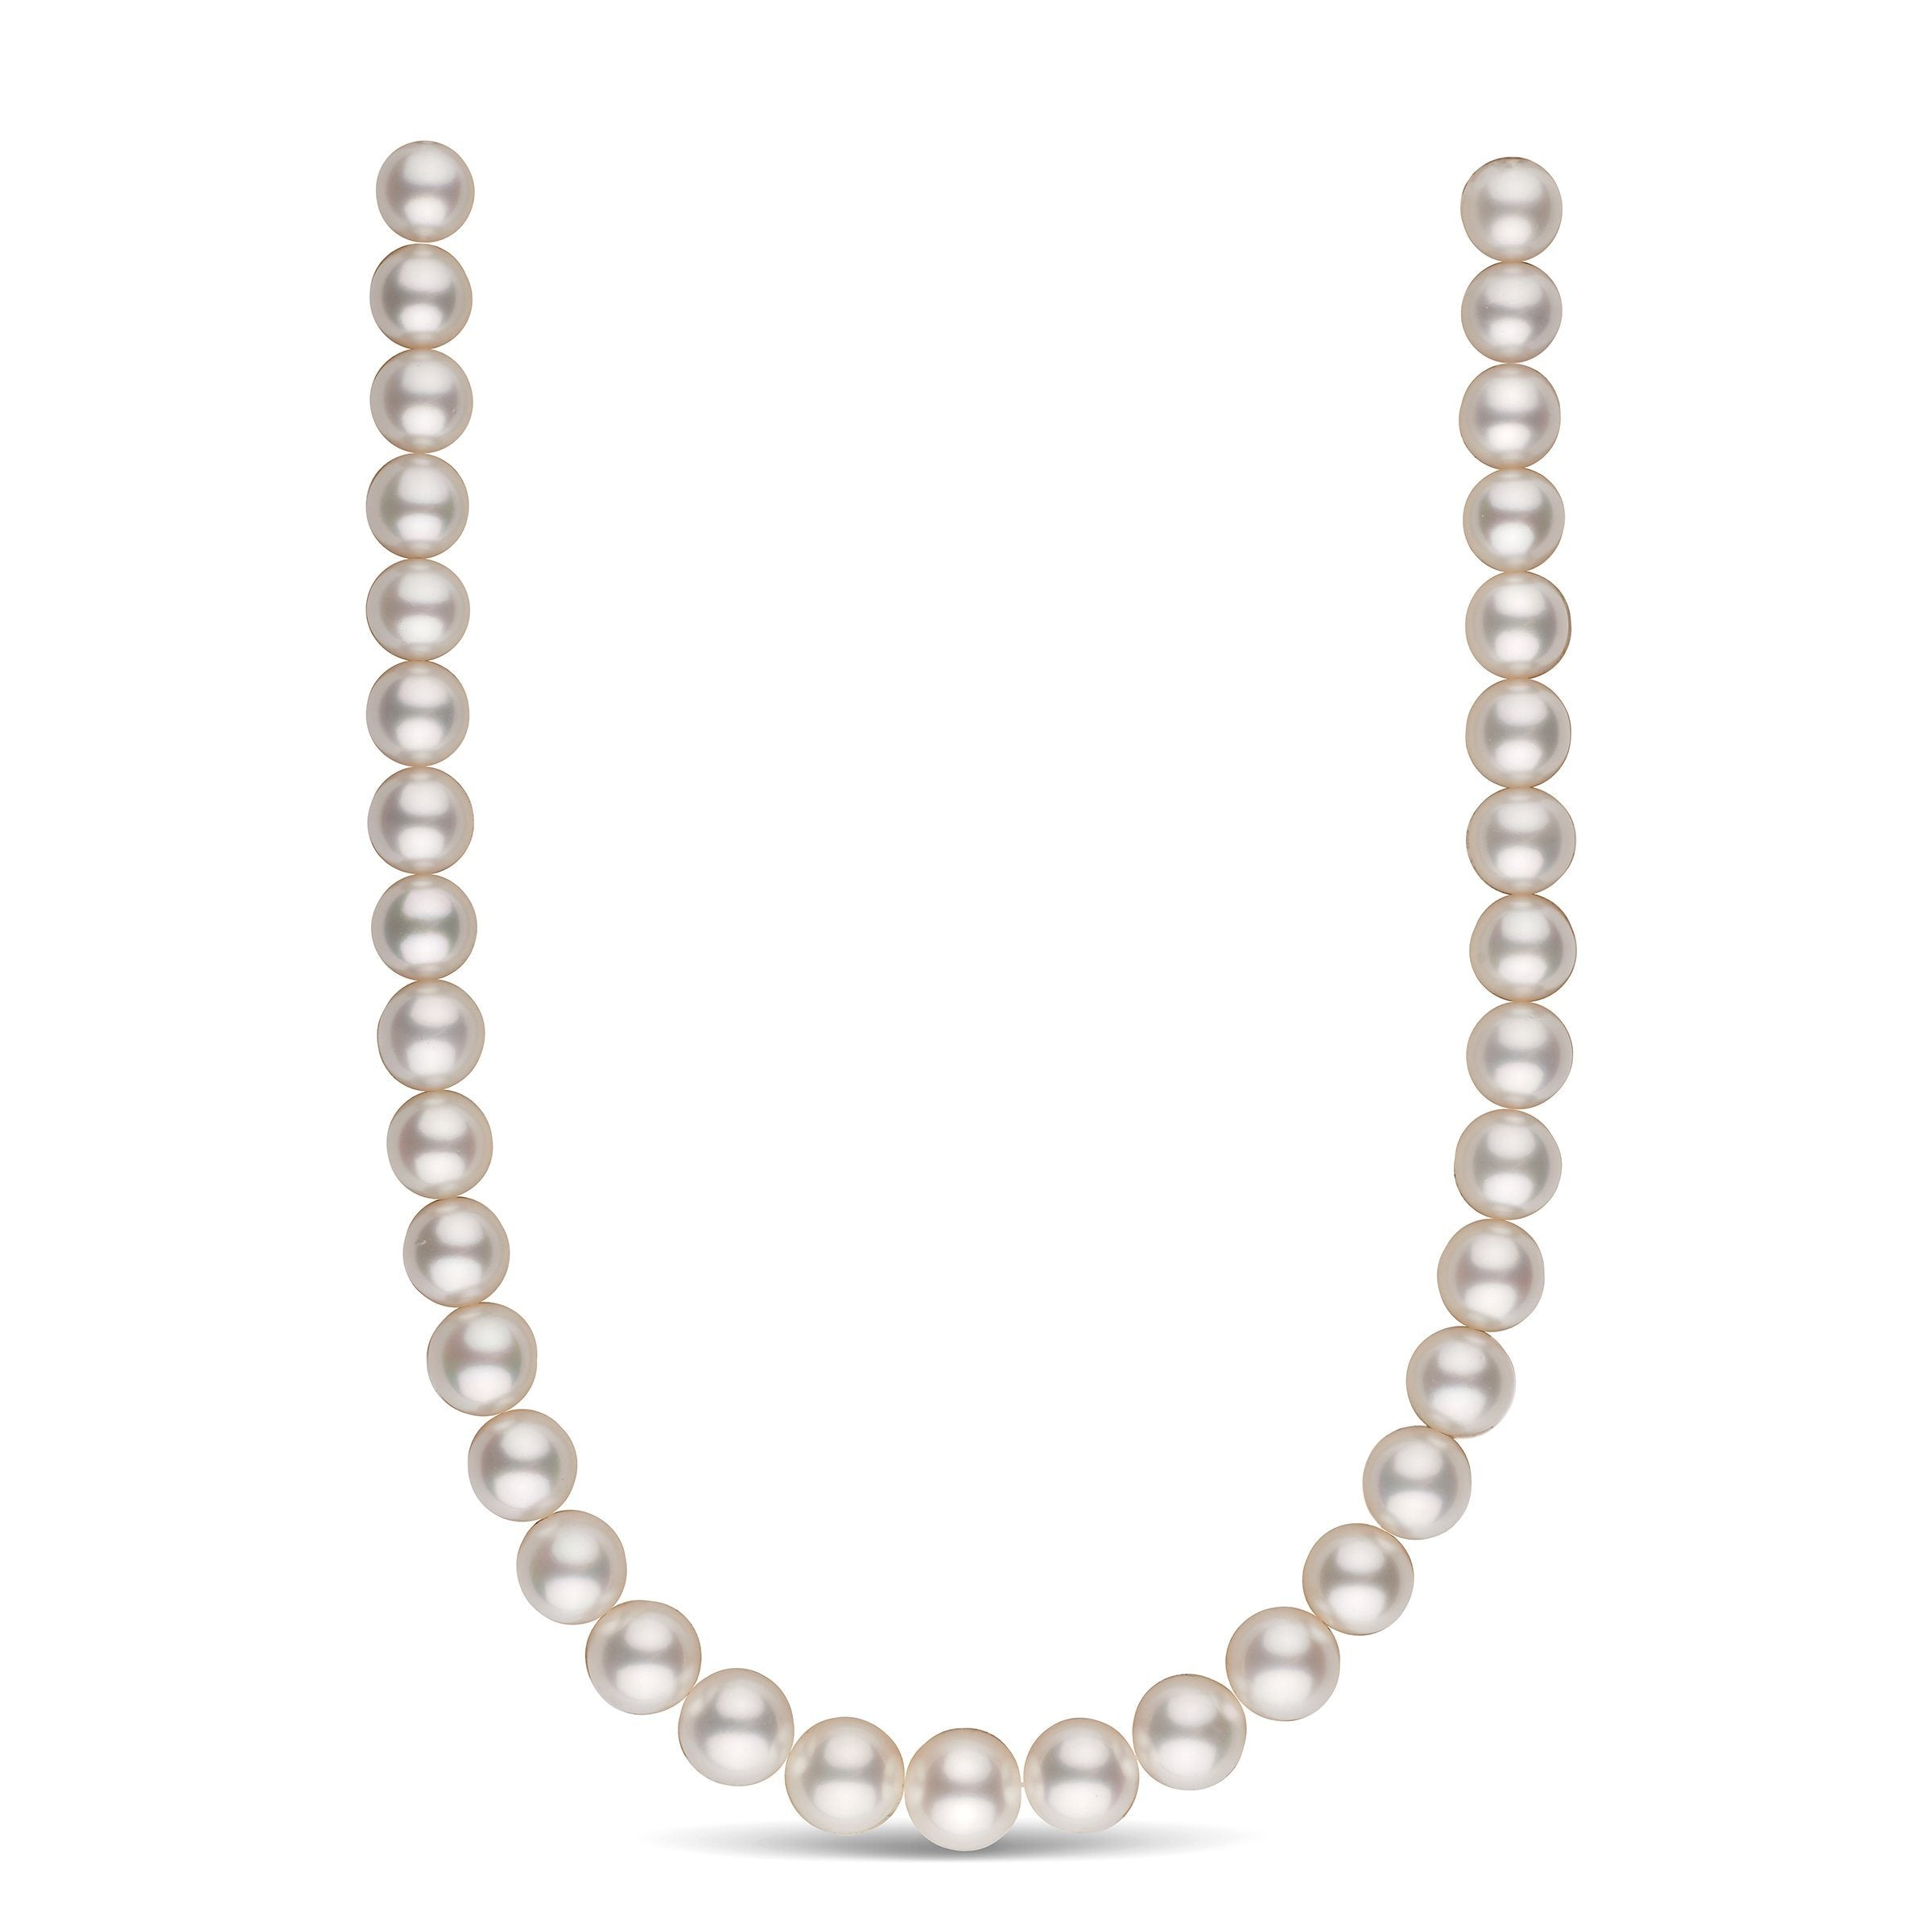 11.1-12.9 mm AA+/AAA White South Sea Round Pearl Necklace